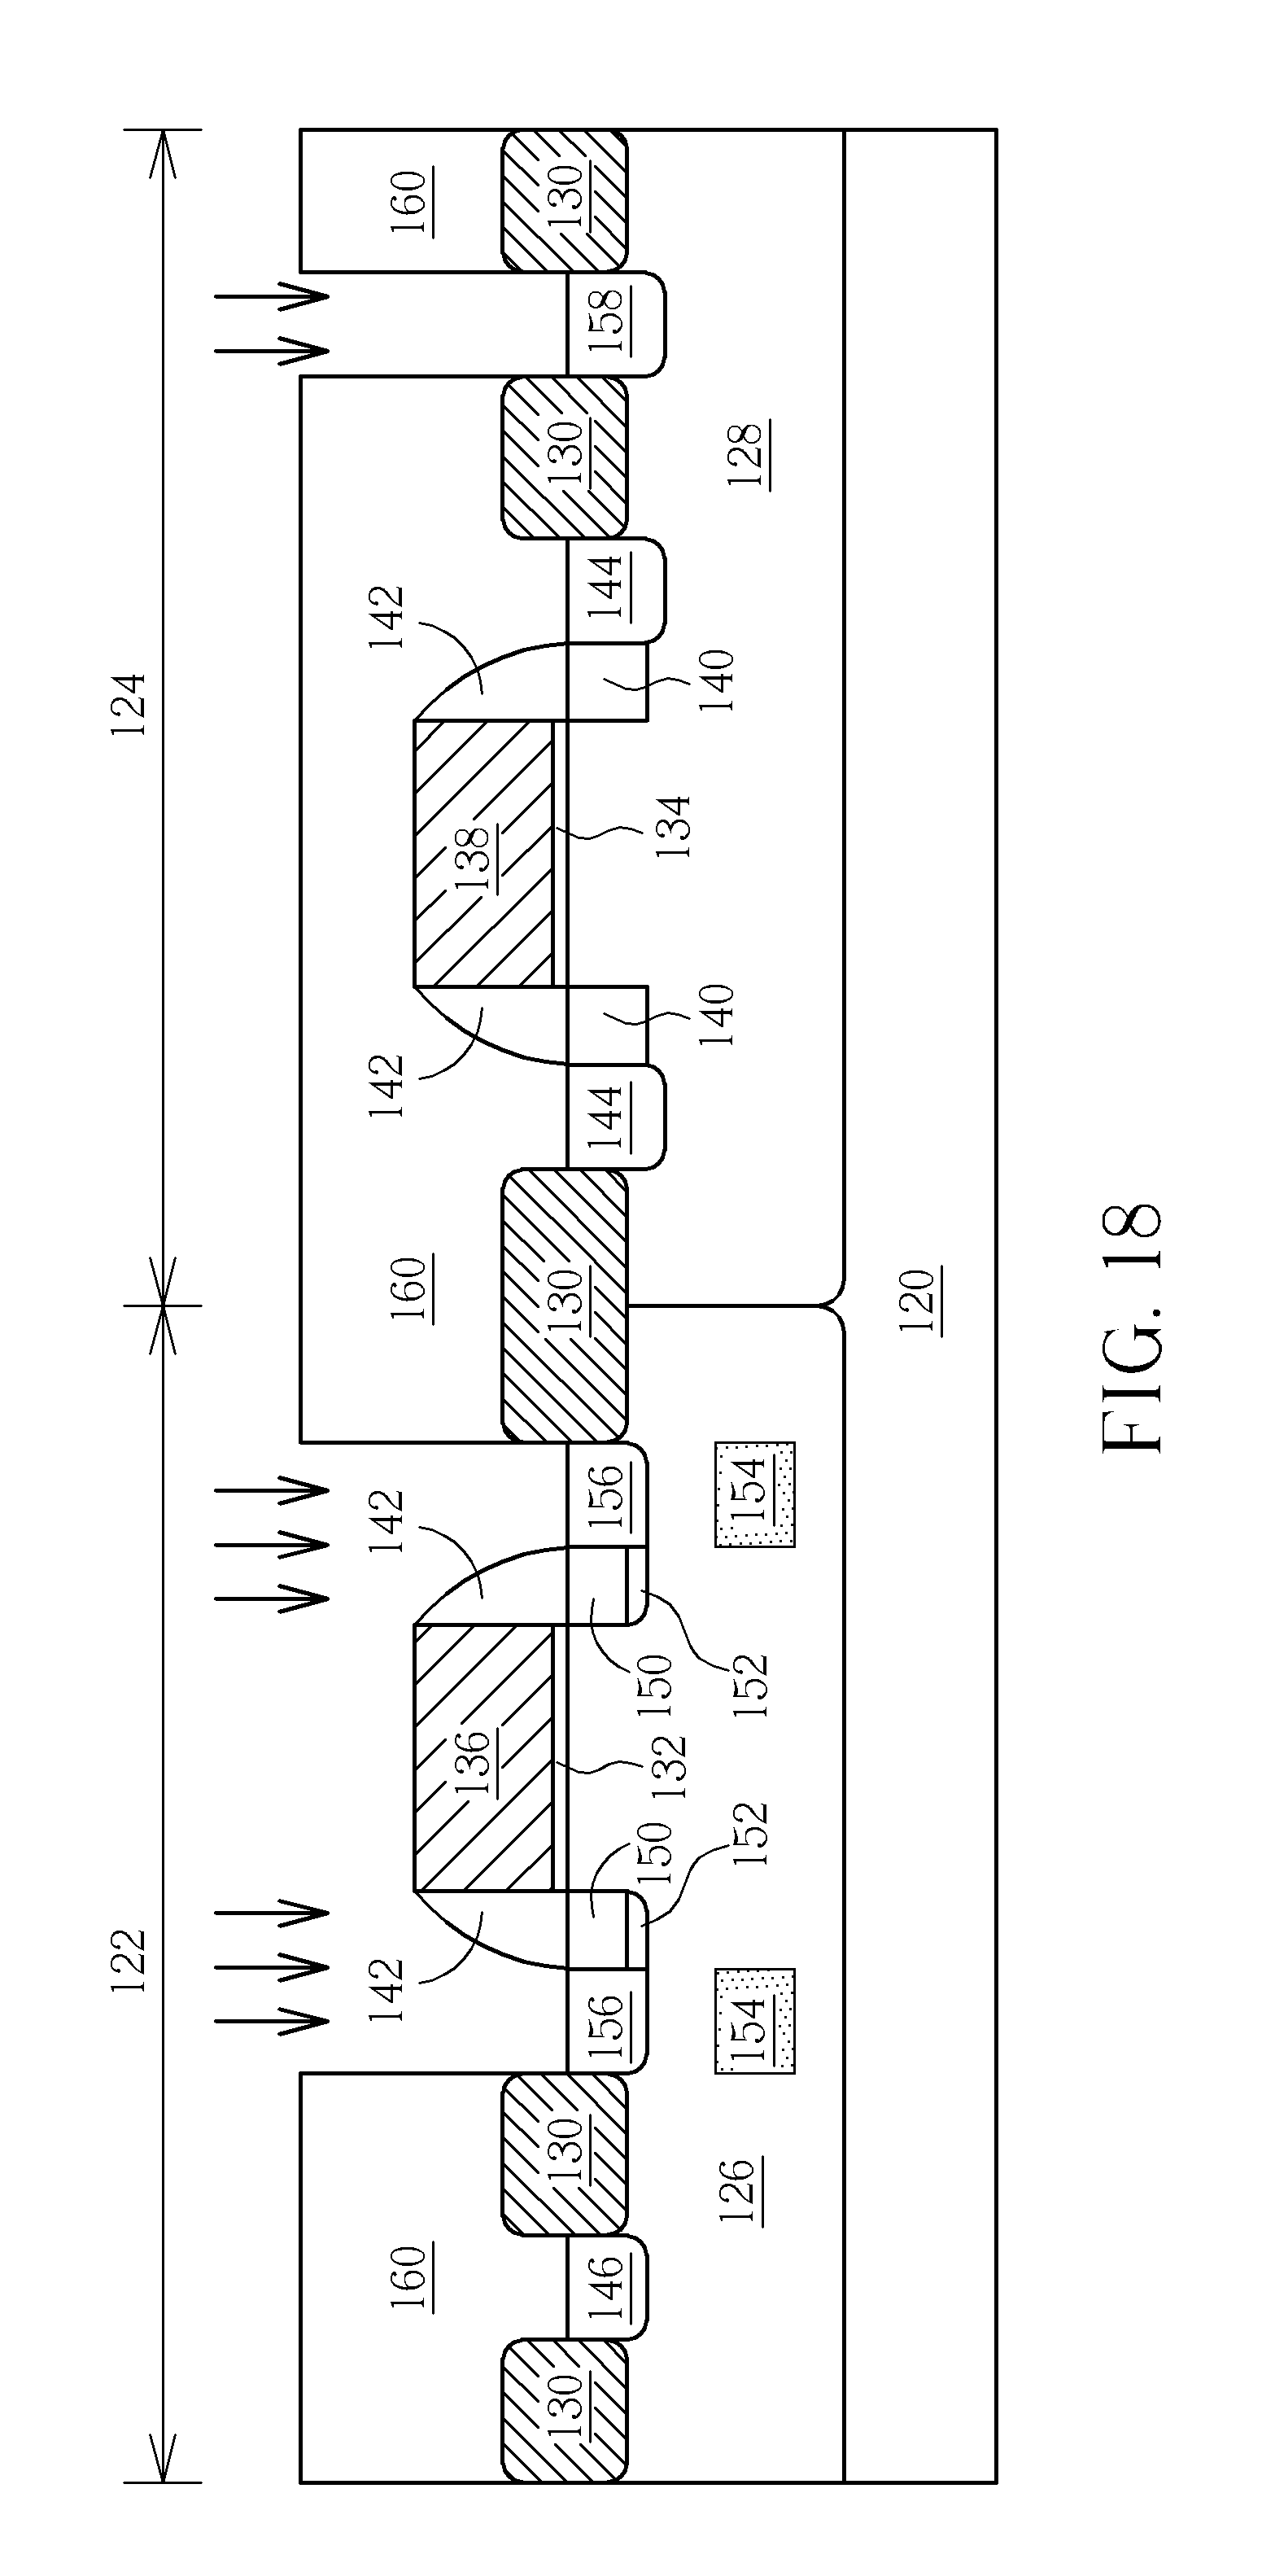 method of fabricating cmos transistor